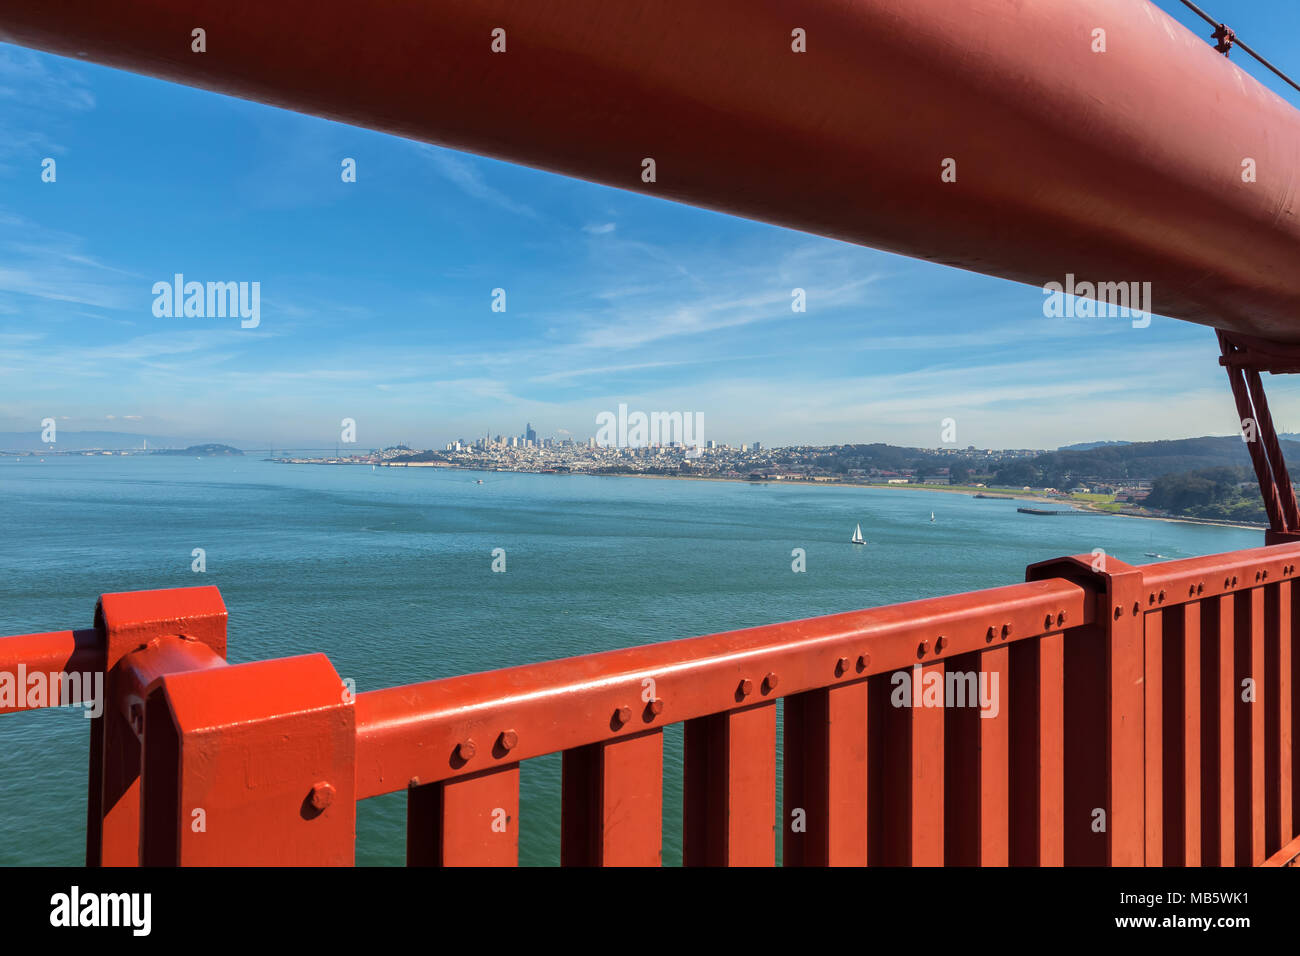 View of the San Francisco City from the Golden Gate Bridge, California, United States. - Stock Image